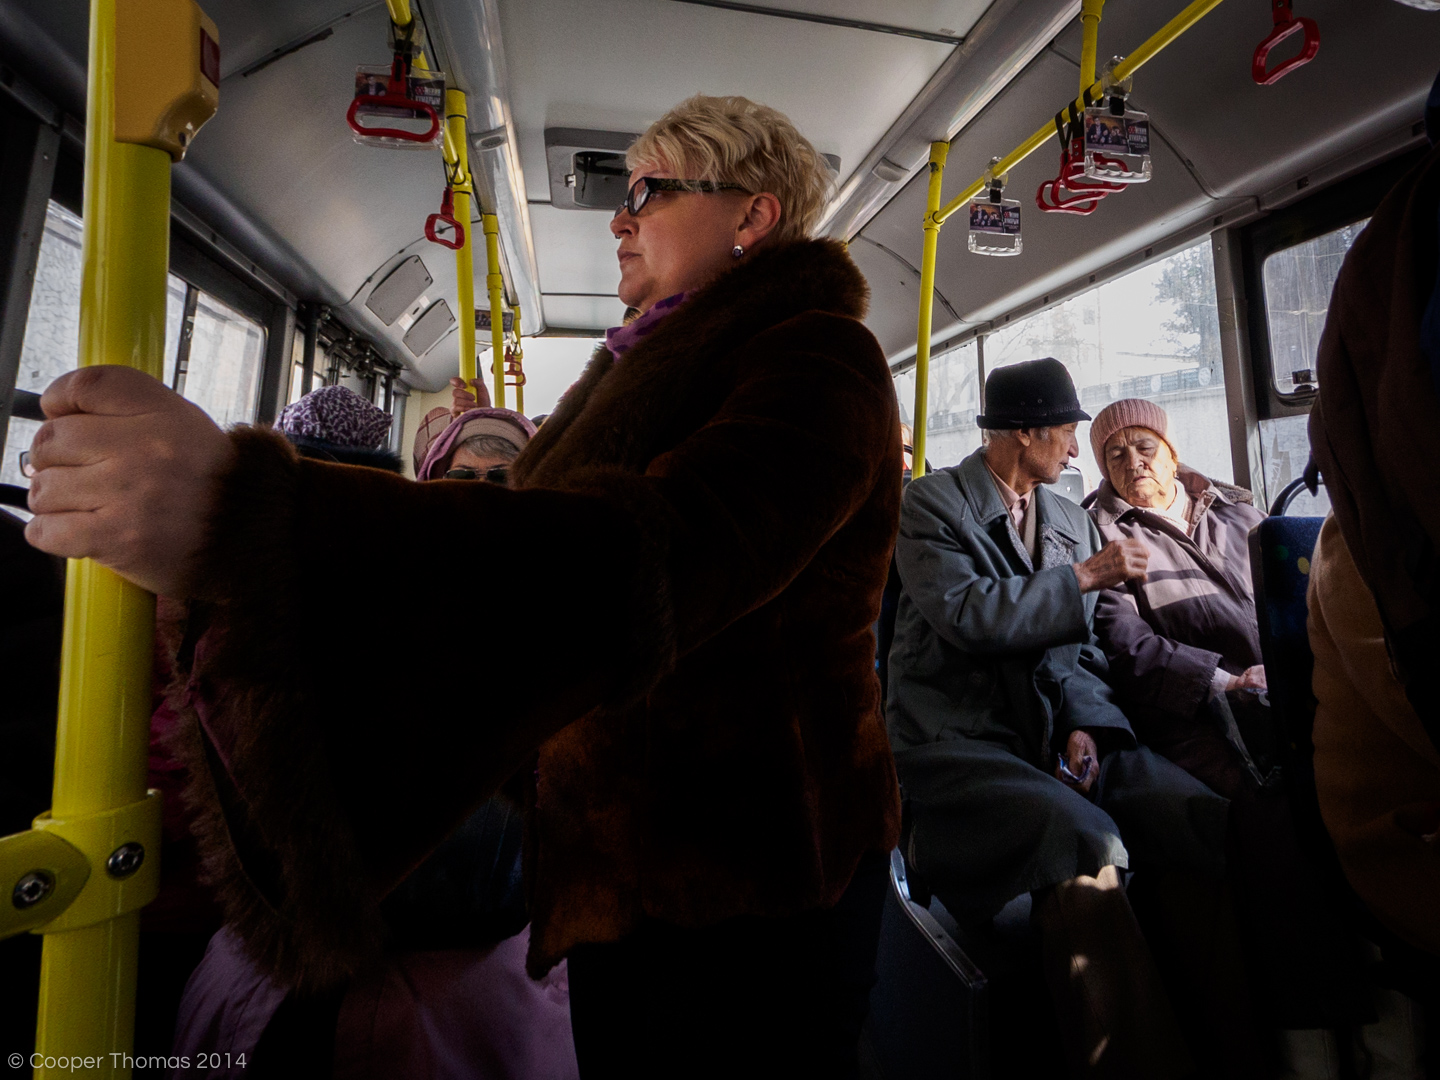 Tram passengers. The vast majority of passengers seem to be over 50 years old.